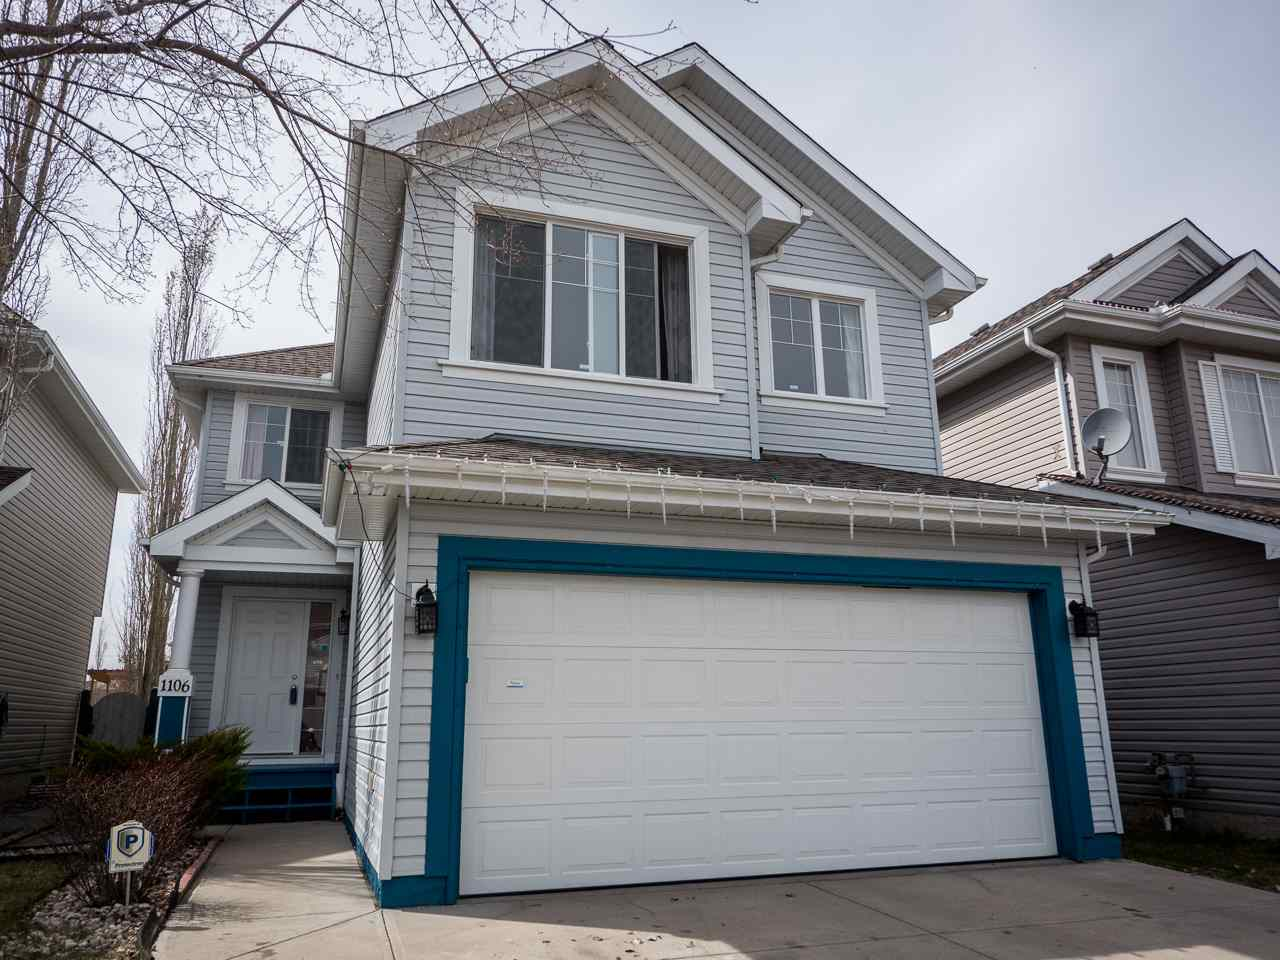 Main Photo: 1106 84 Street in Edmonton: Zone 53 House for sale : MLS® # E4075366